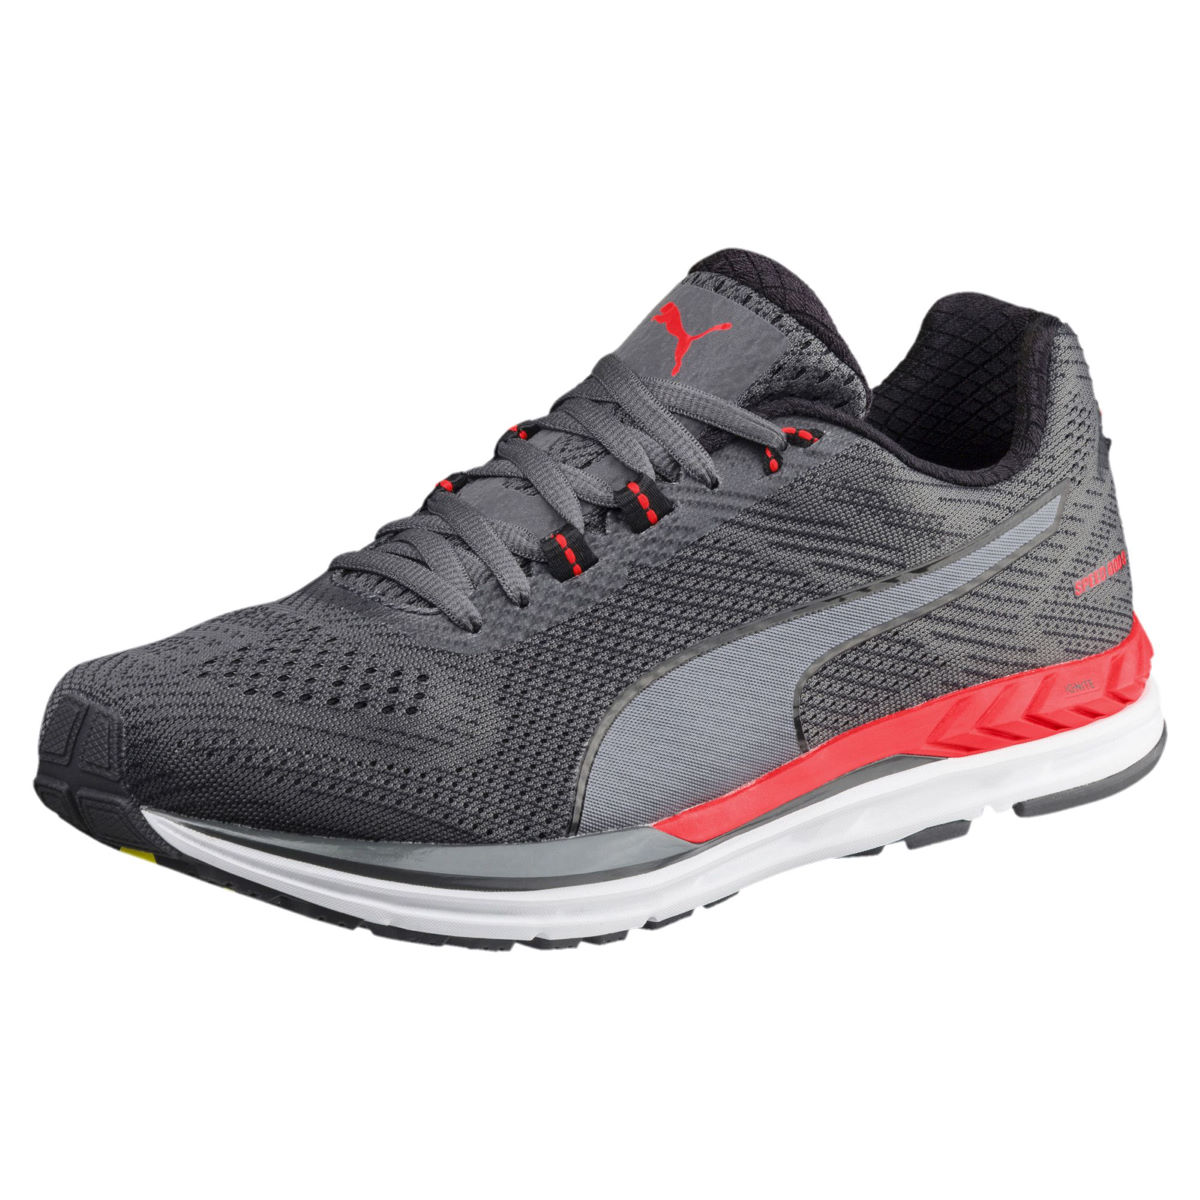 Chaussures Puma Speed 600 S Ignite - UK 10 asphalt-red blast